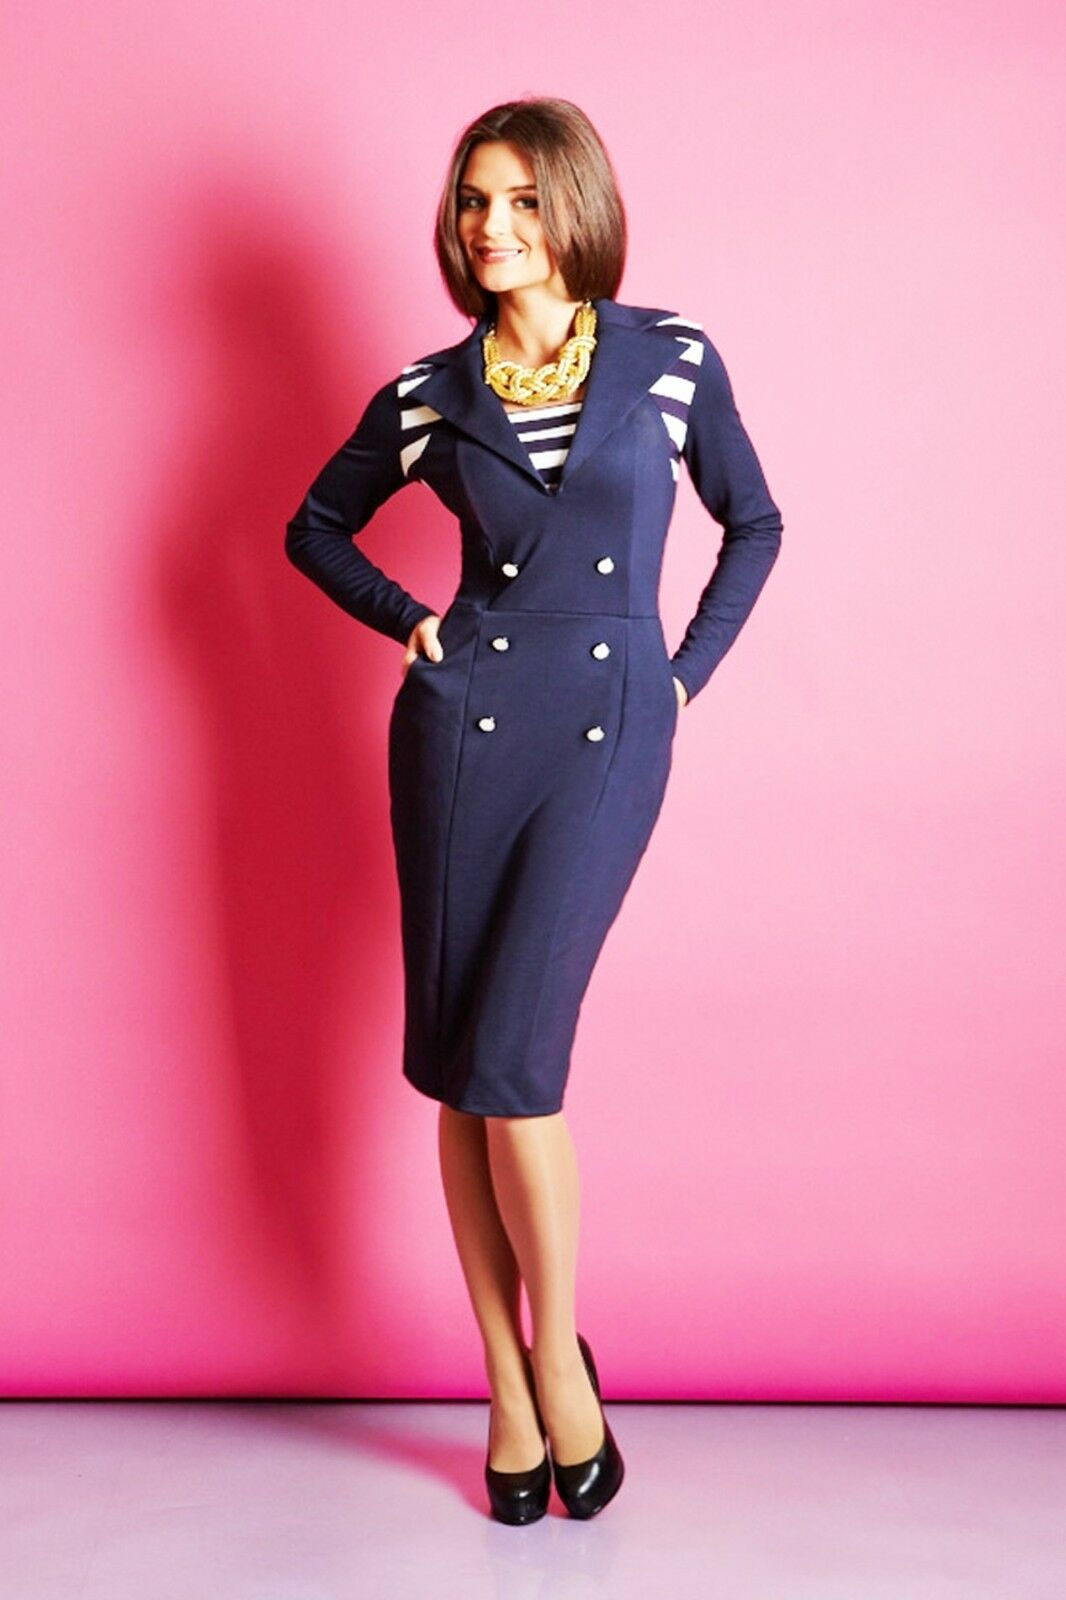 WEAR TO WORK LONG SLEEVE DRESS European Stretch Navy Blau Pocket Contrast Dress